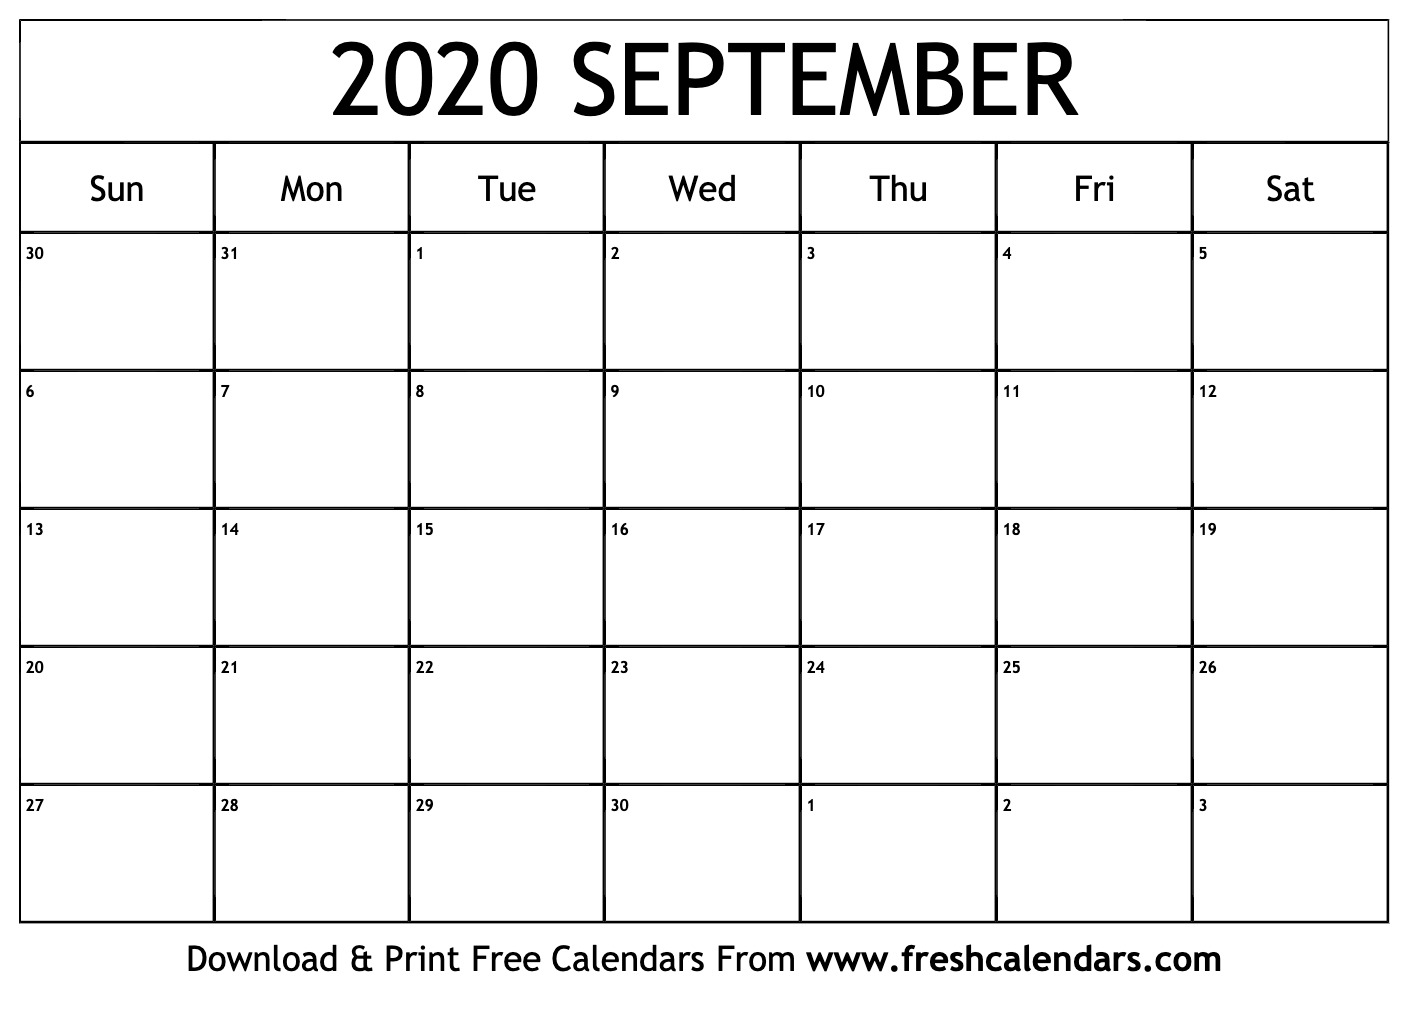 Free Printable Calendar September 2020 Top 10 Punto Medio Noticias | Blank Calendar September 2020